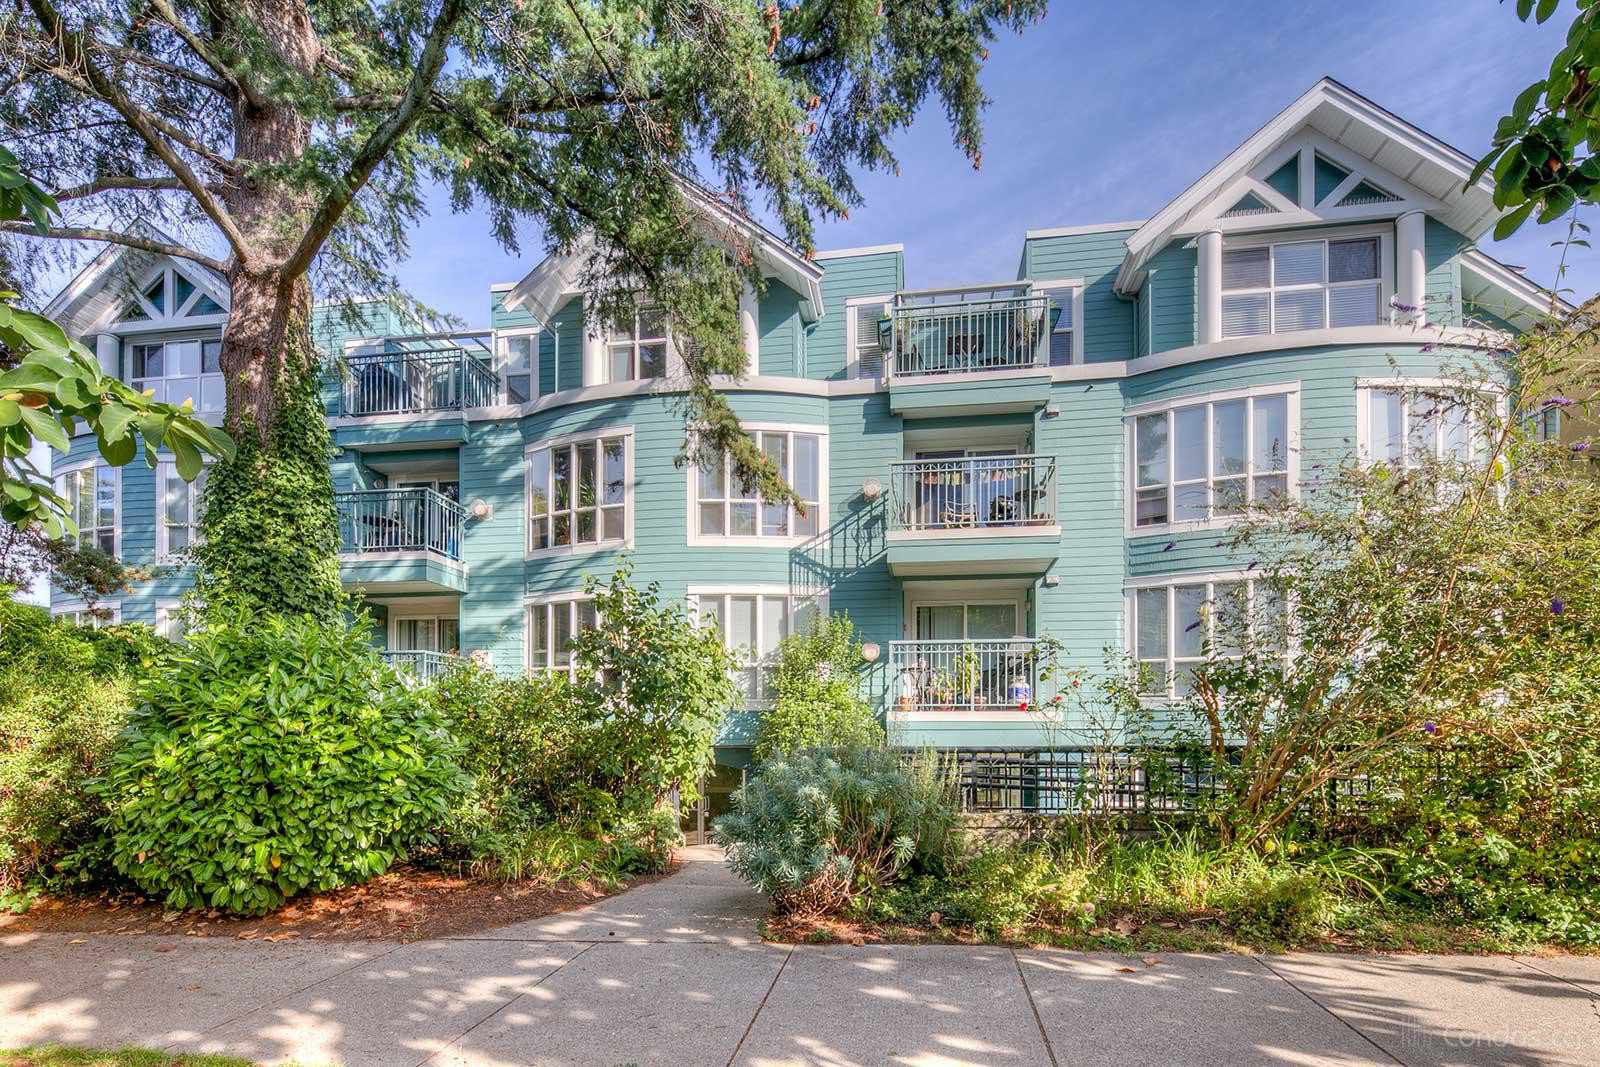 Evergreen Place at 1617 Grant St, Vancouver 0